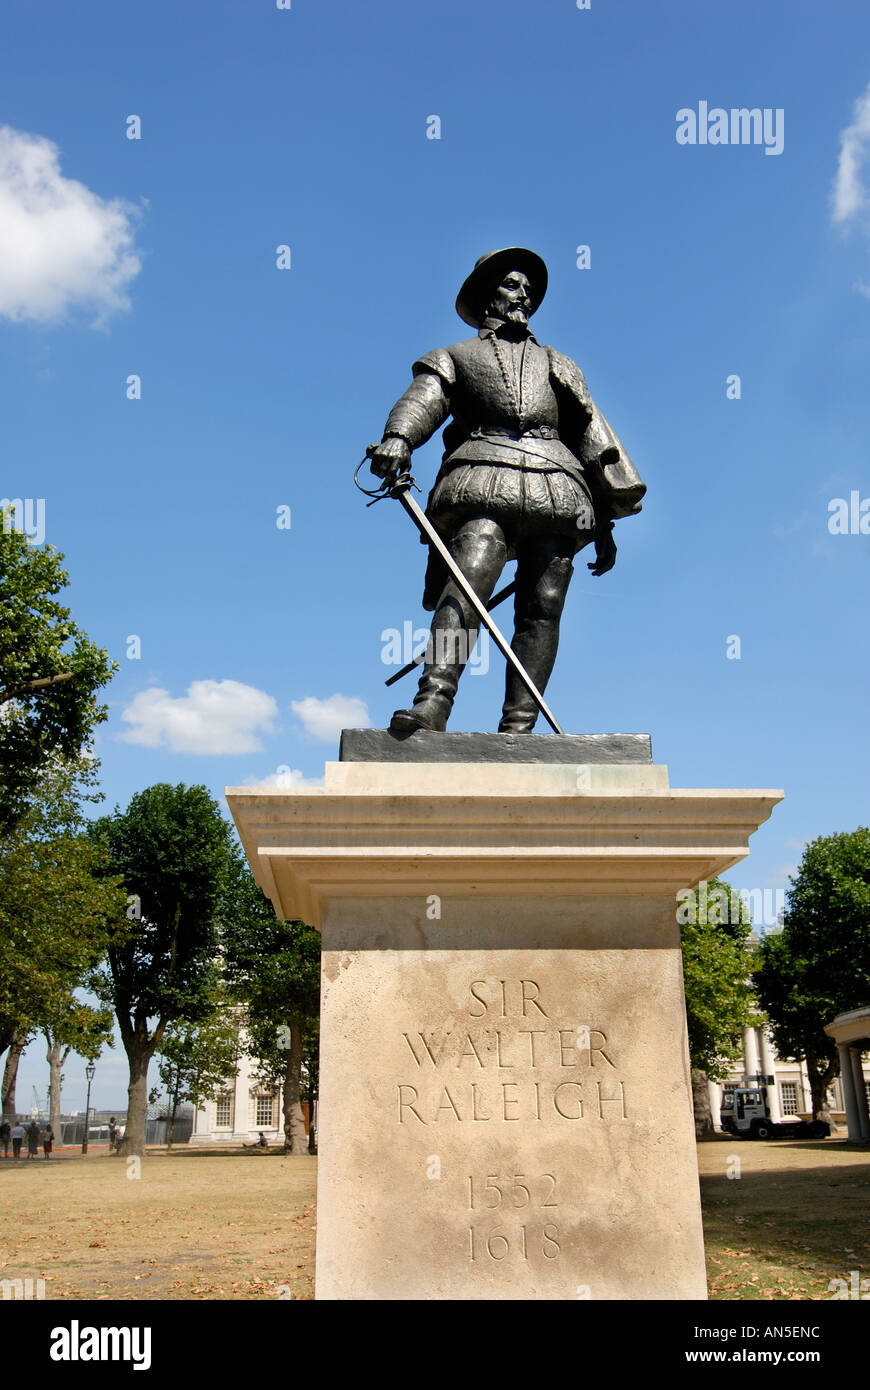 Statue of Sir Walter Raleigh at the National Maritime museum Greenwich London - Stock Image